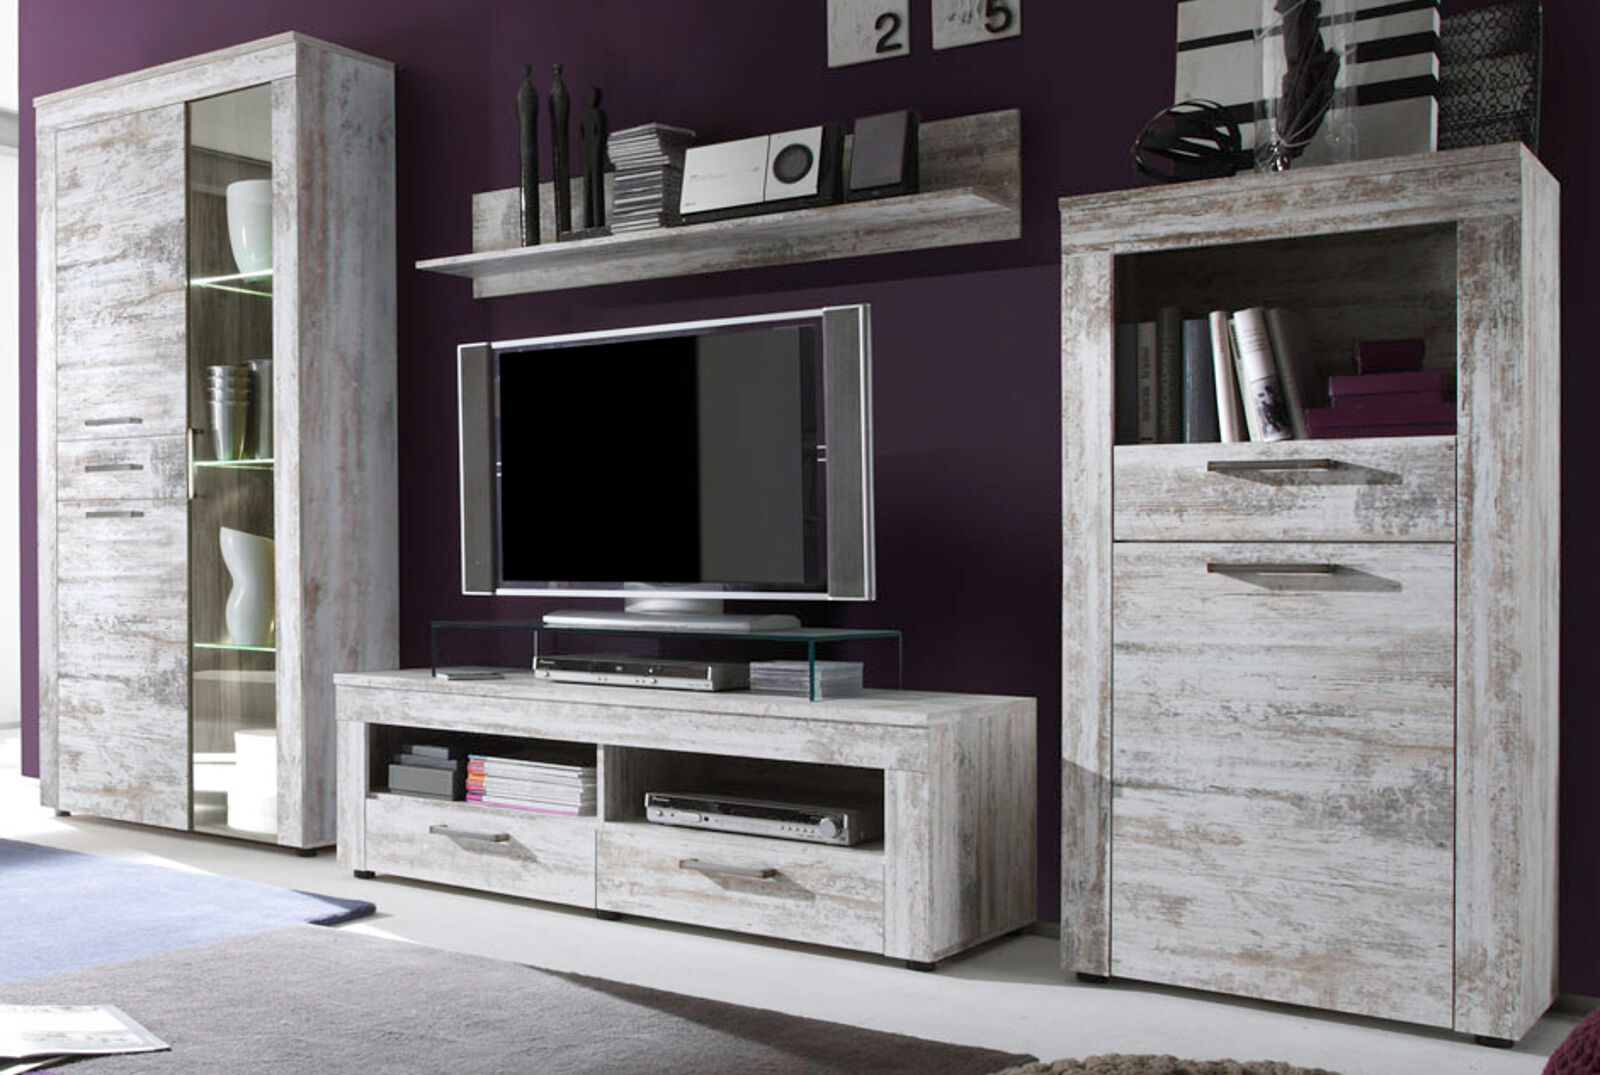 rankwand mehr als 1500 angebote fotos preise. Black Bedroom Furniture Sets. Home Design Ideas